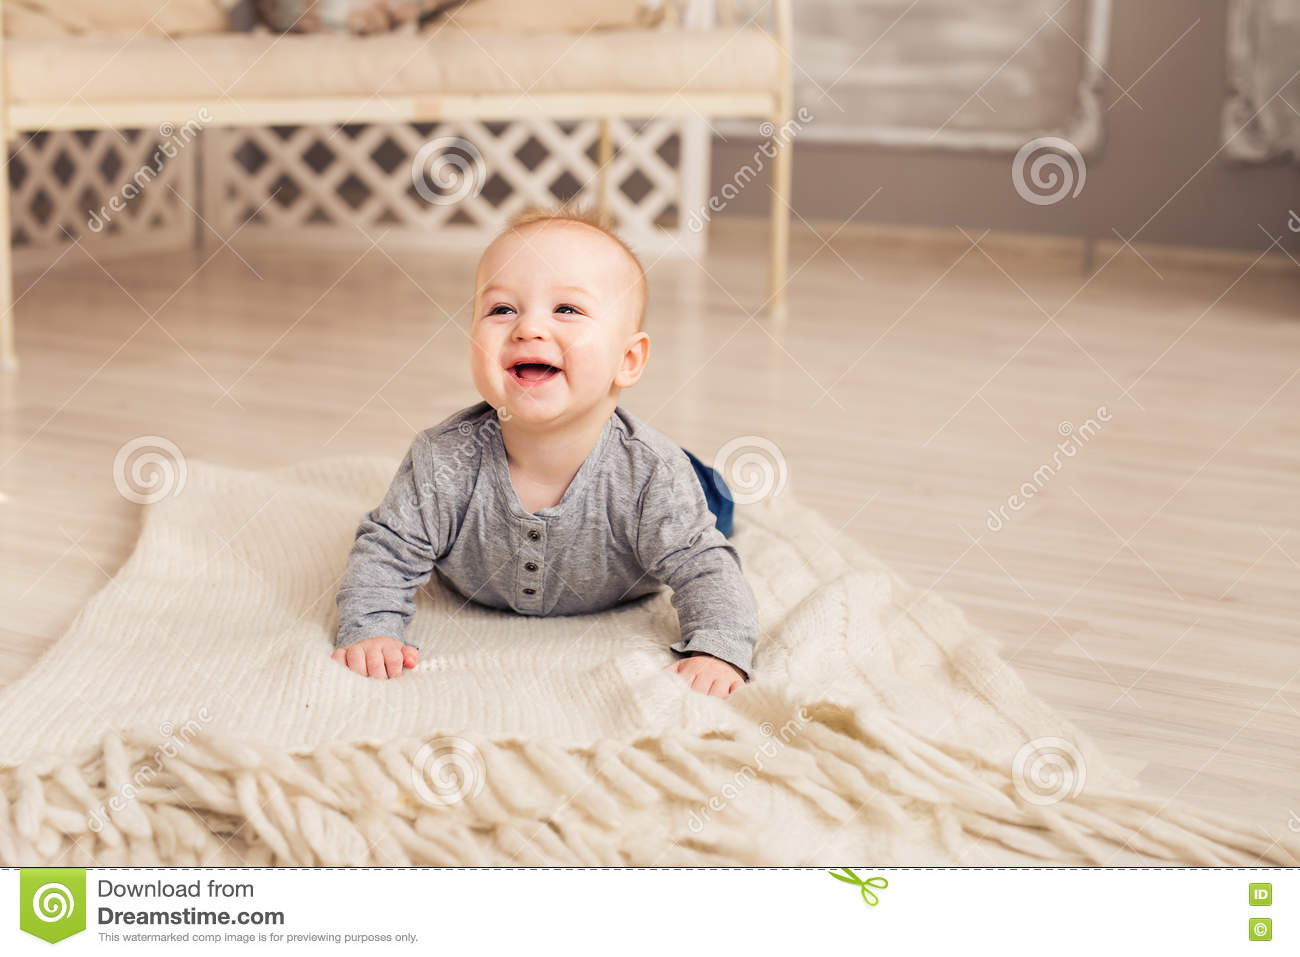 37 best Leave smile---Good Smile images on Pinterest ... |Cute Smiling Baby Faces